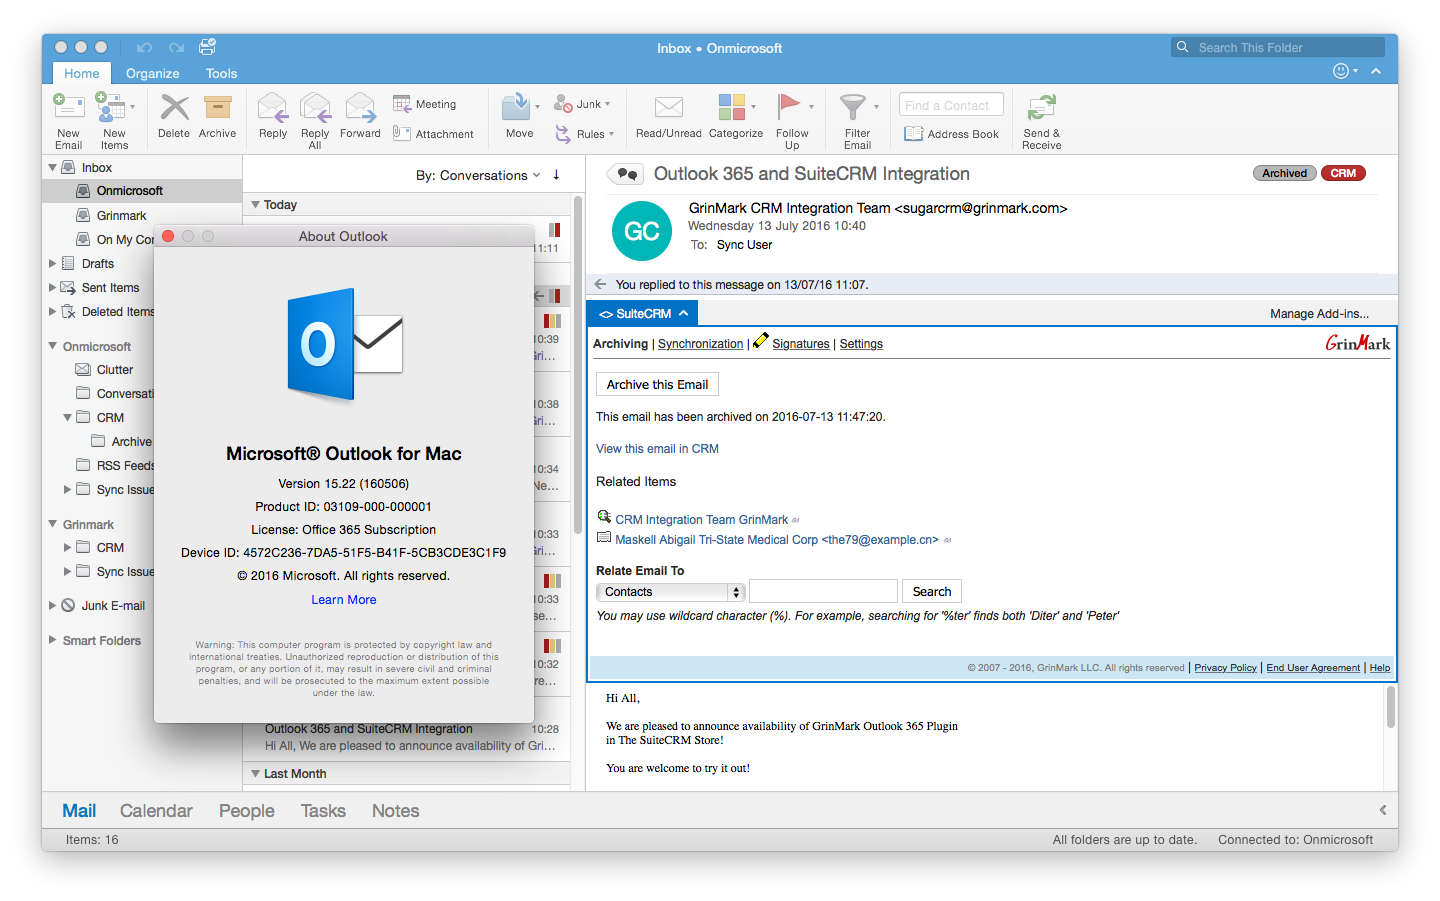 SuiteCRM and Outlook on a Mac